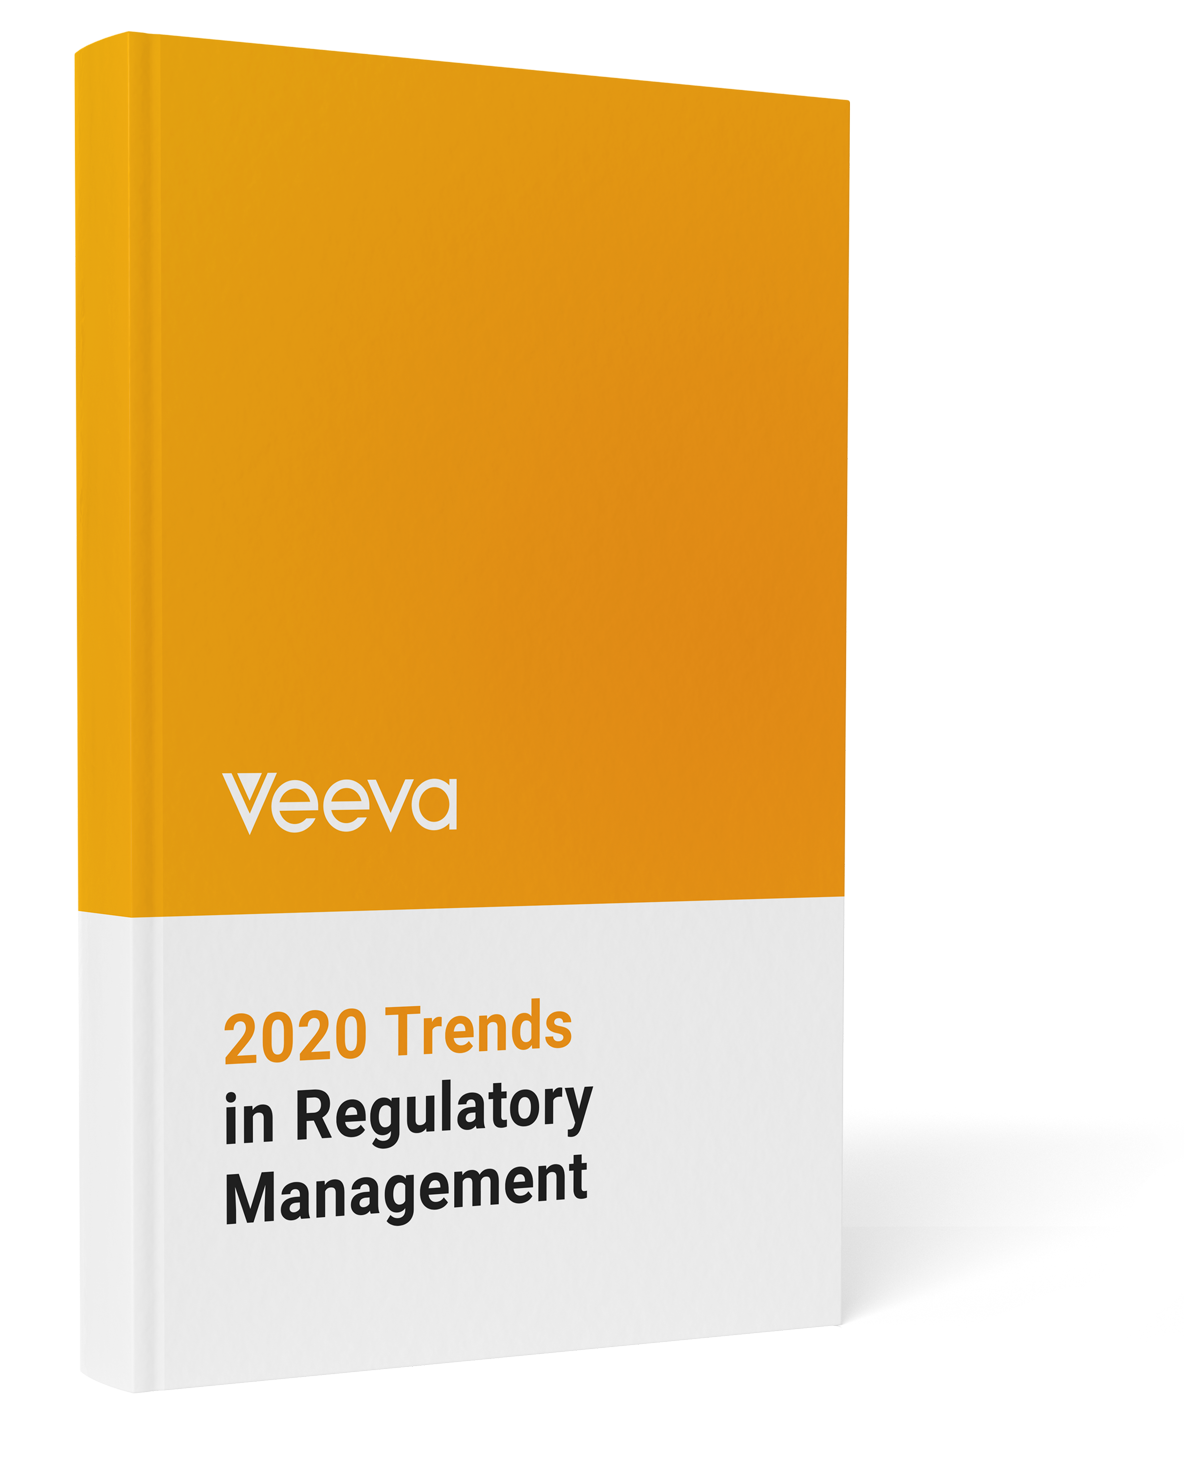 2020 Trends in Regulatory Management